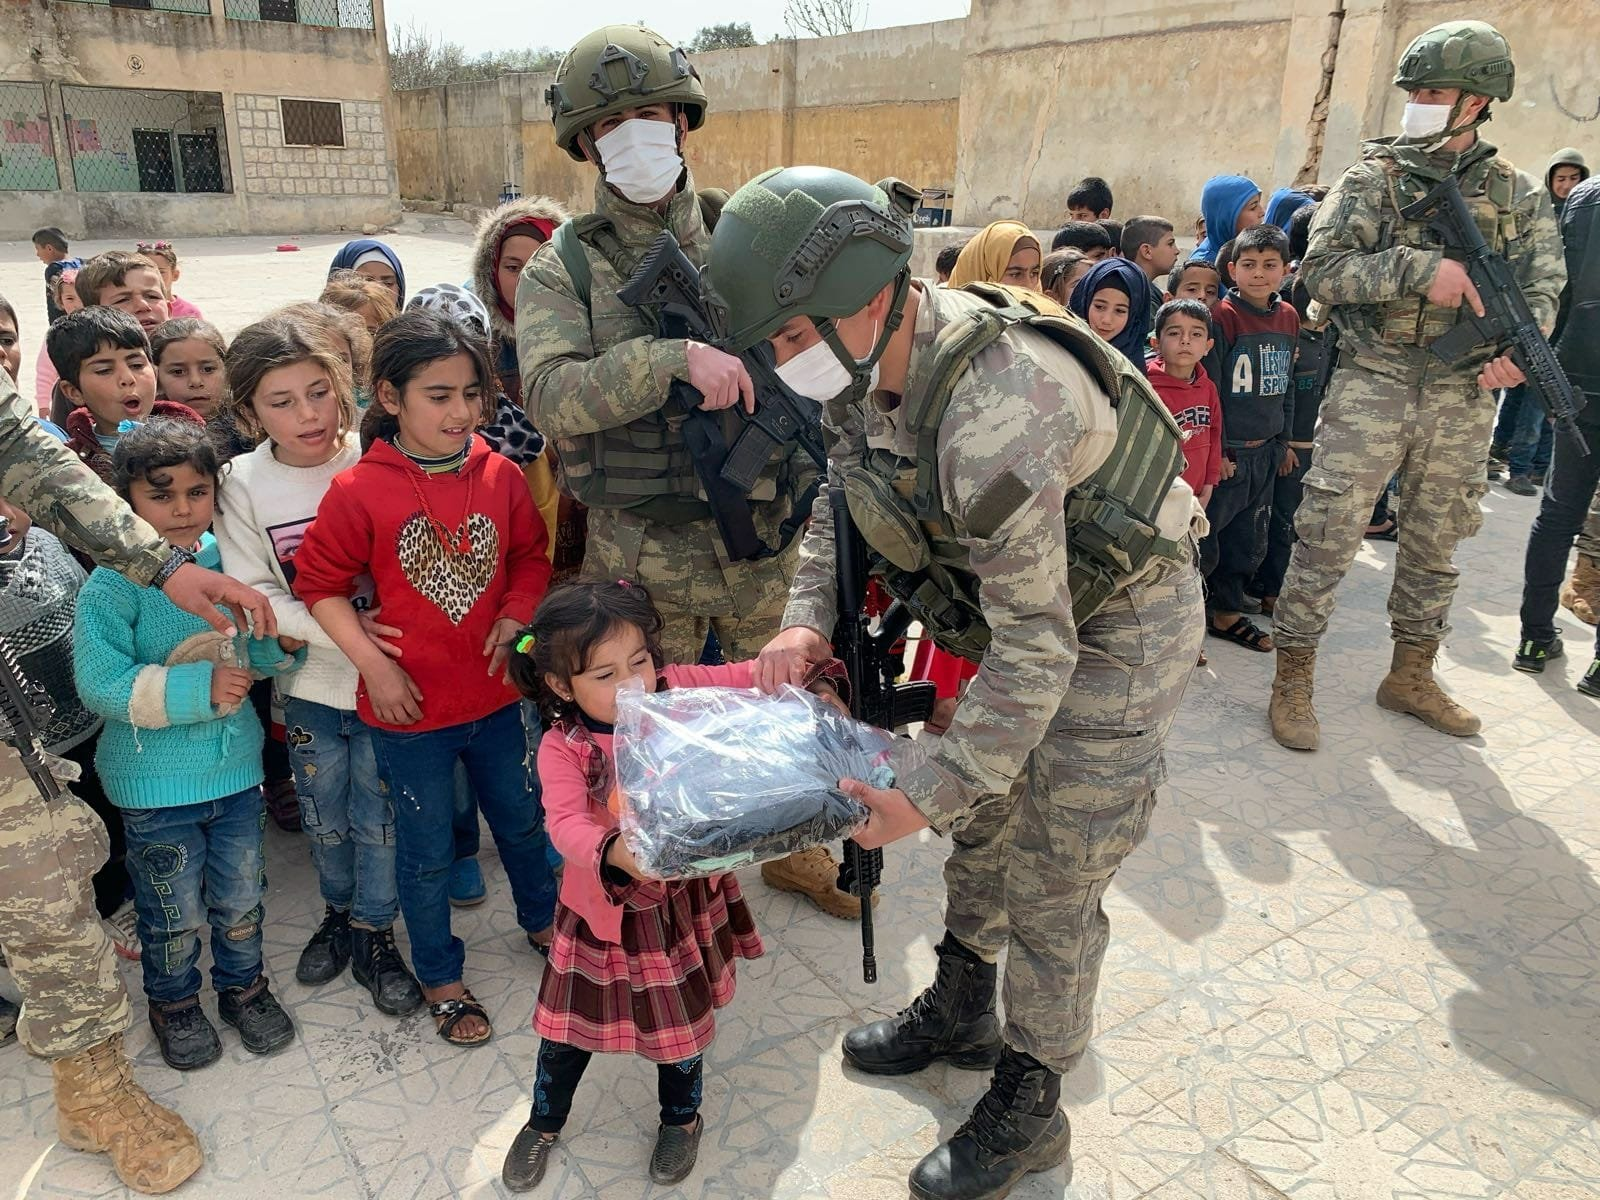 Turkish soldiers deliver clothes and toys collected during an aid campaign in Turkey's northern province of Zonguldak to the displaced Syrian refugee children, Idlib, northern Syria, March 11, 2021. (AA Photo)